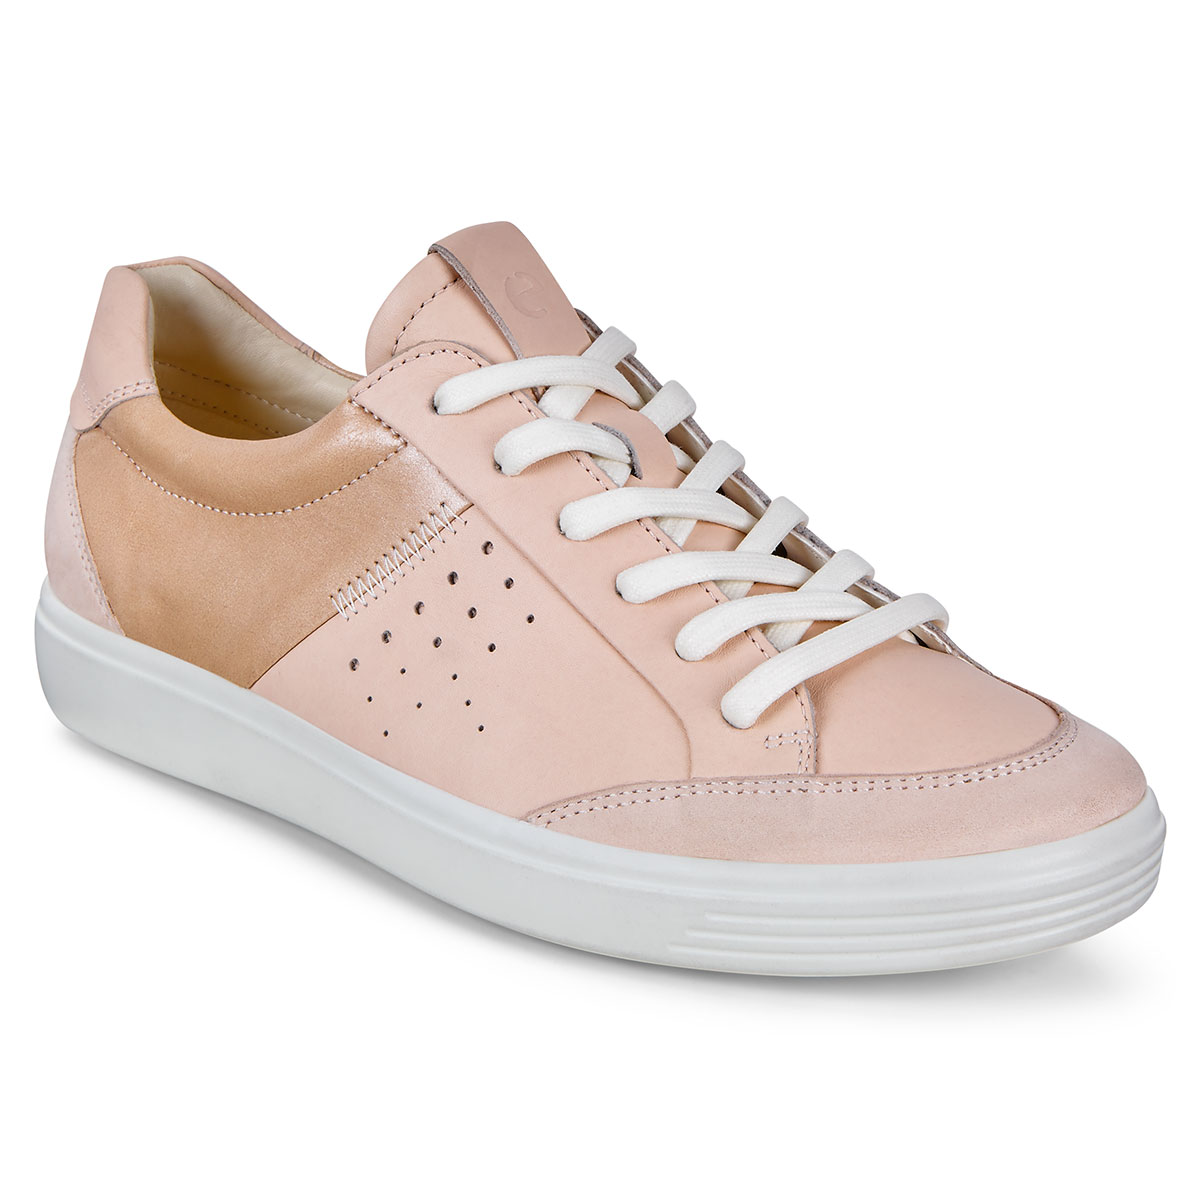 Ecco Womens 2019 Soft 7 W Powder Cushion Sole Leather Trainers Shoes